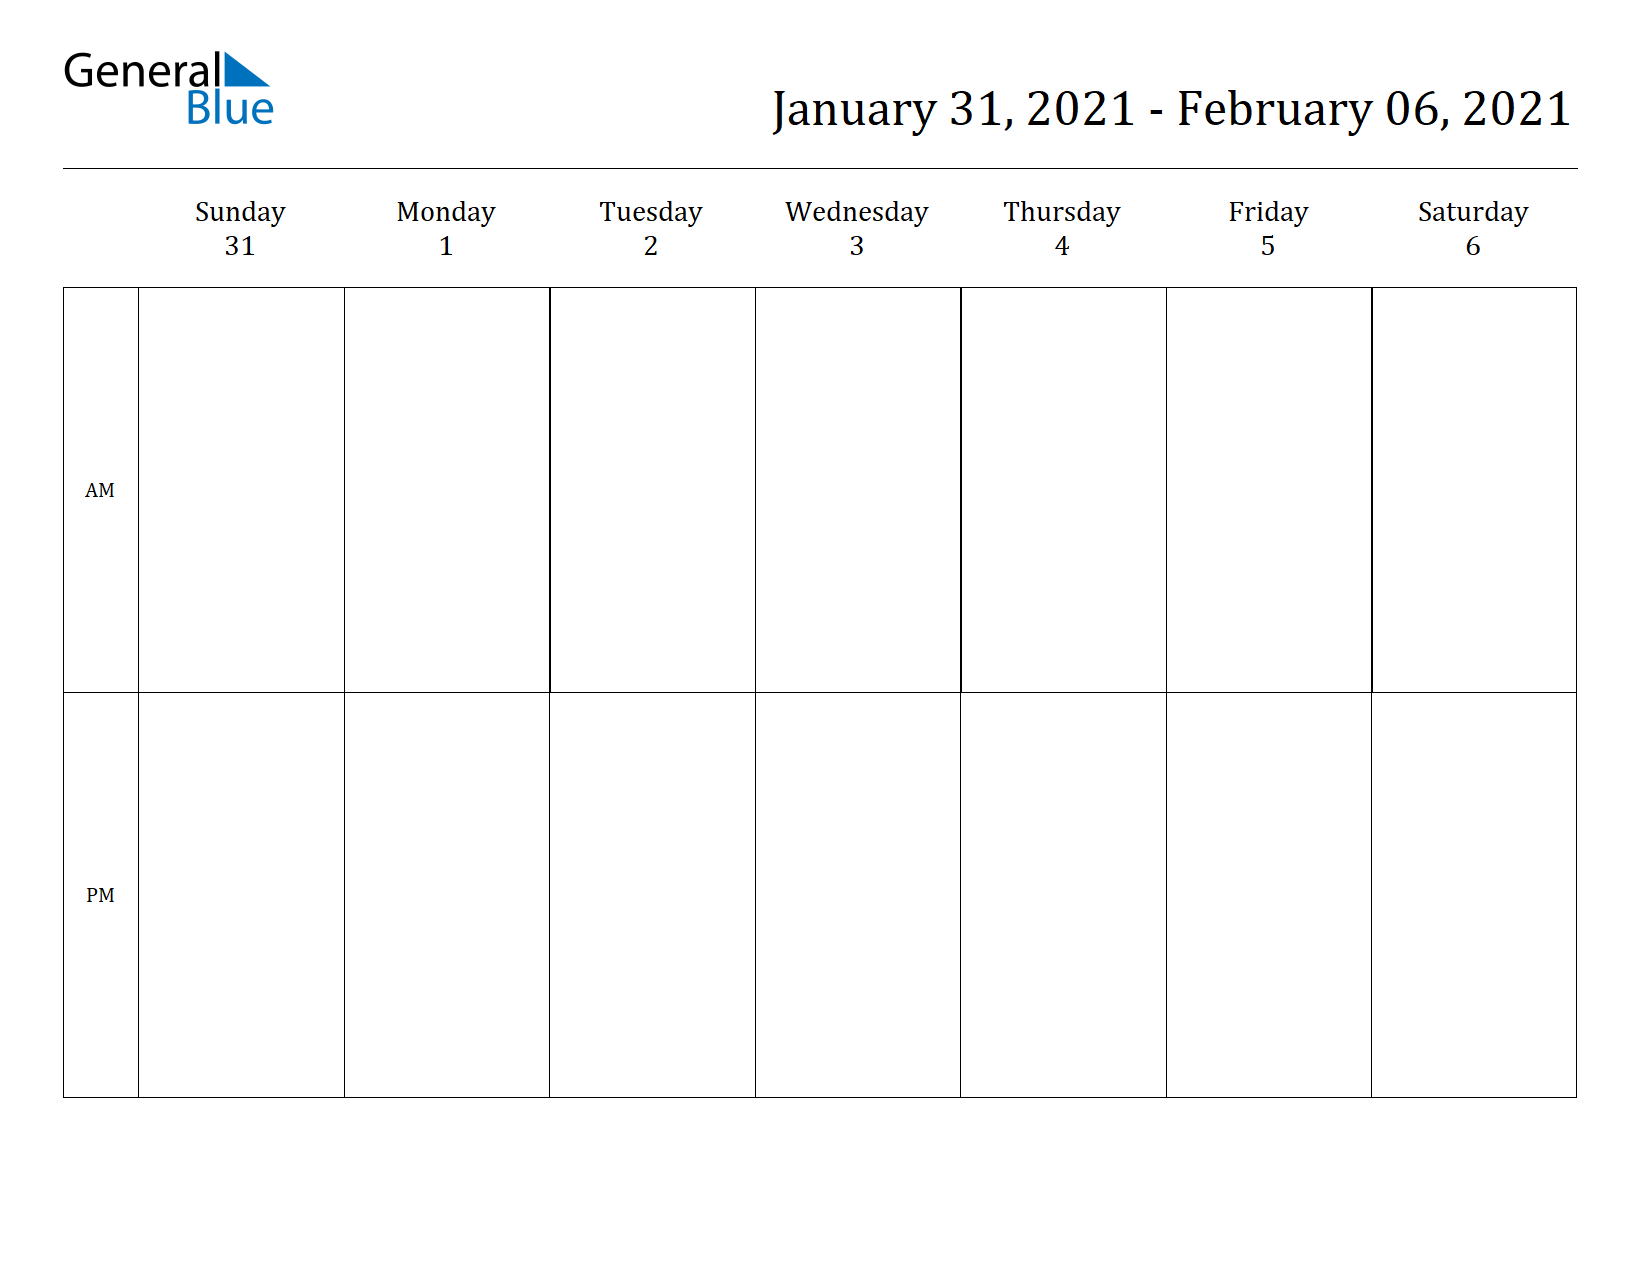 Weekly Calendar for Jan 31, 2021 to Feb 06, 2021